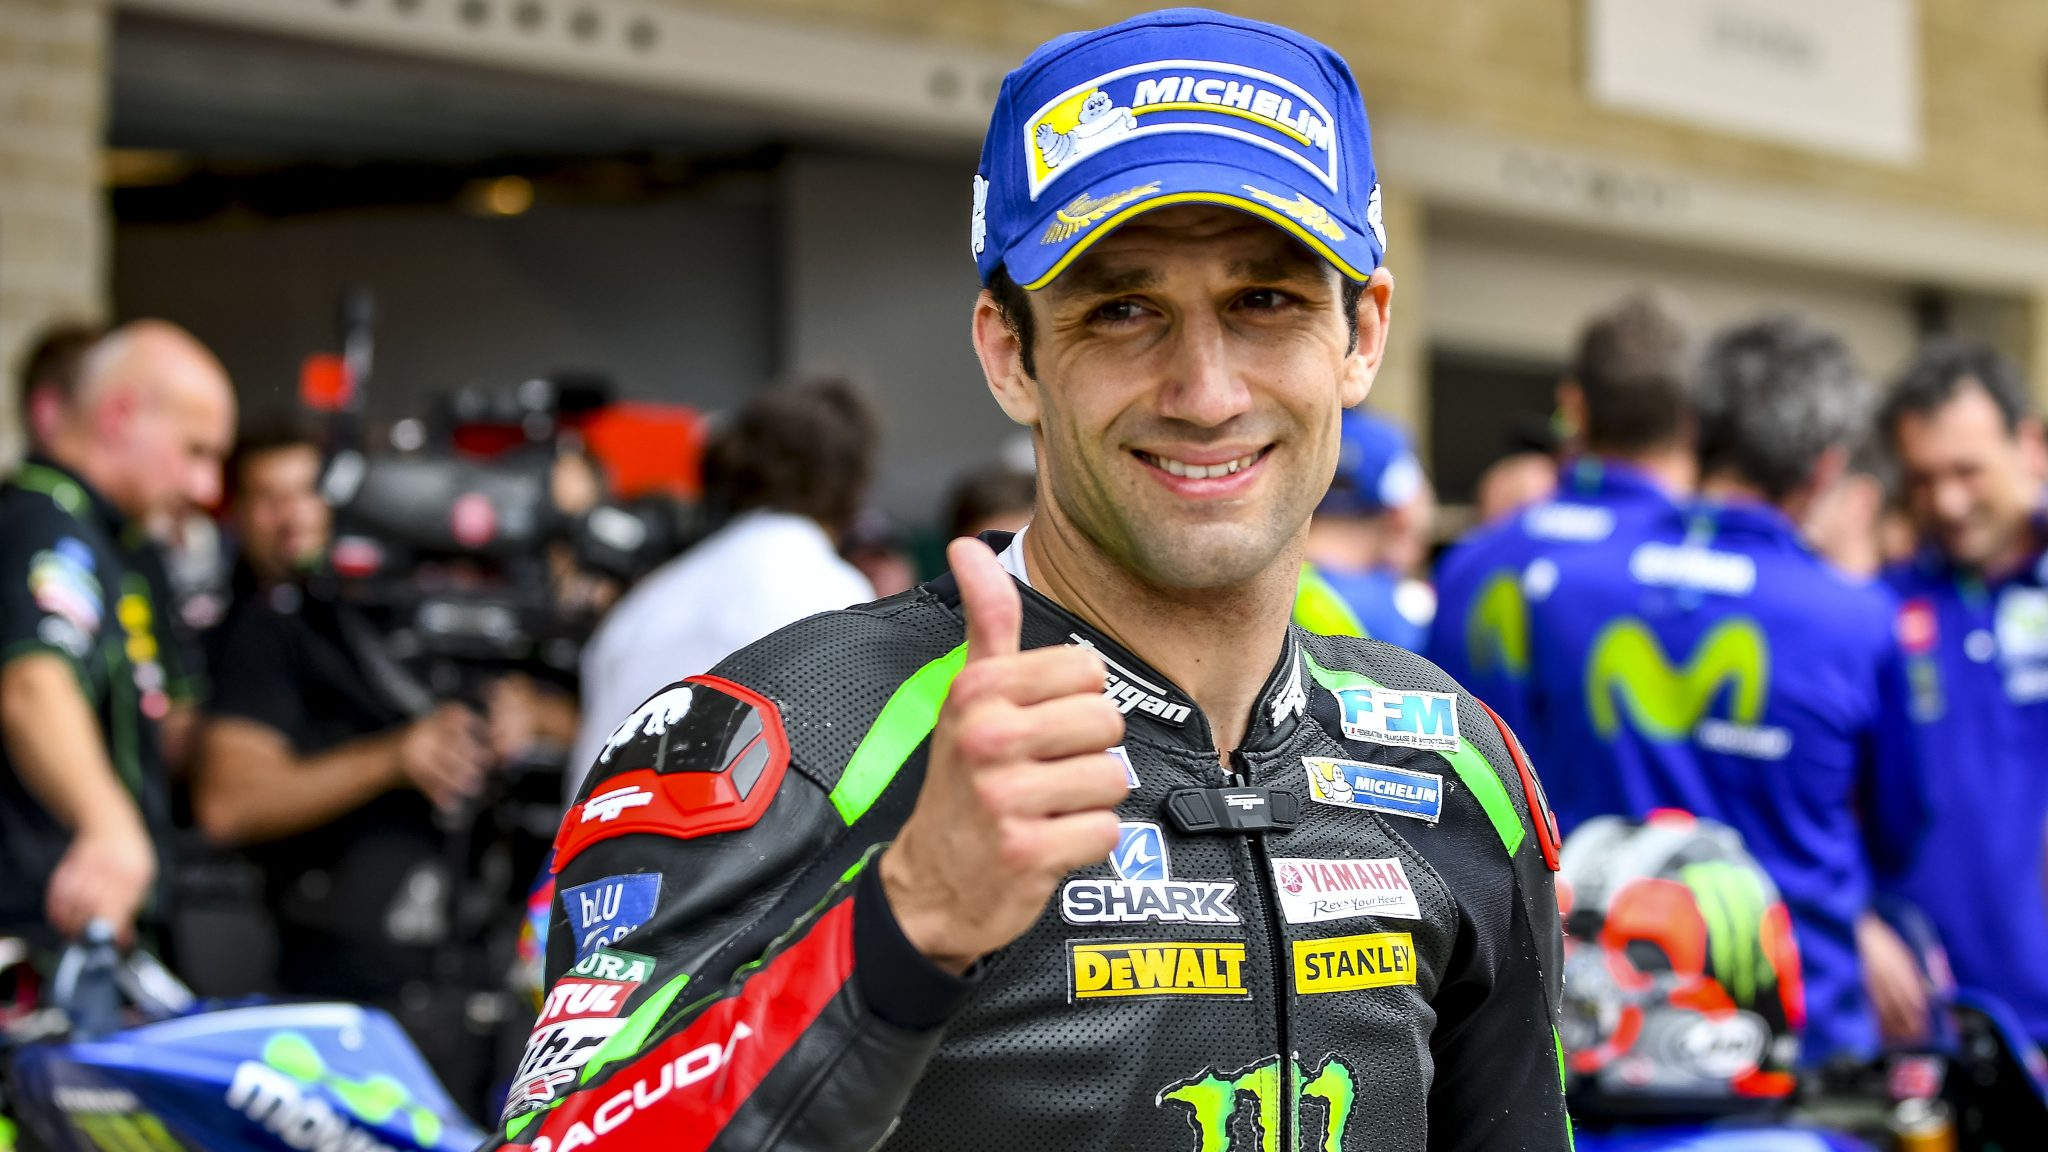 MotoGP – Red Bull KTM confirms Johann Zarco for two years